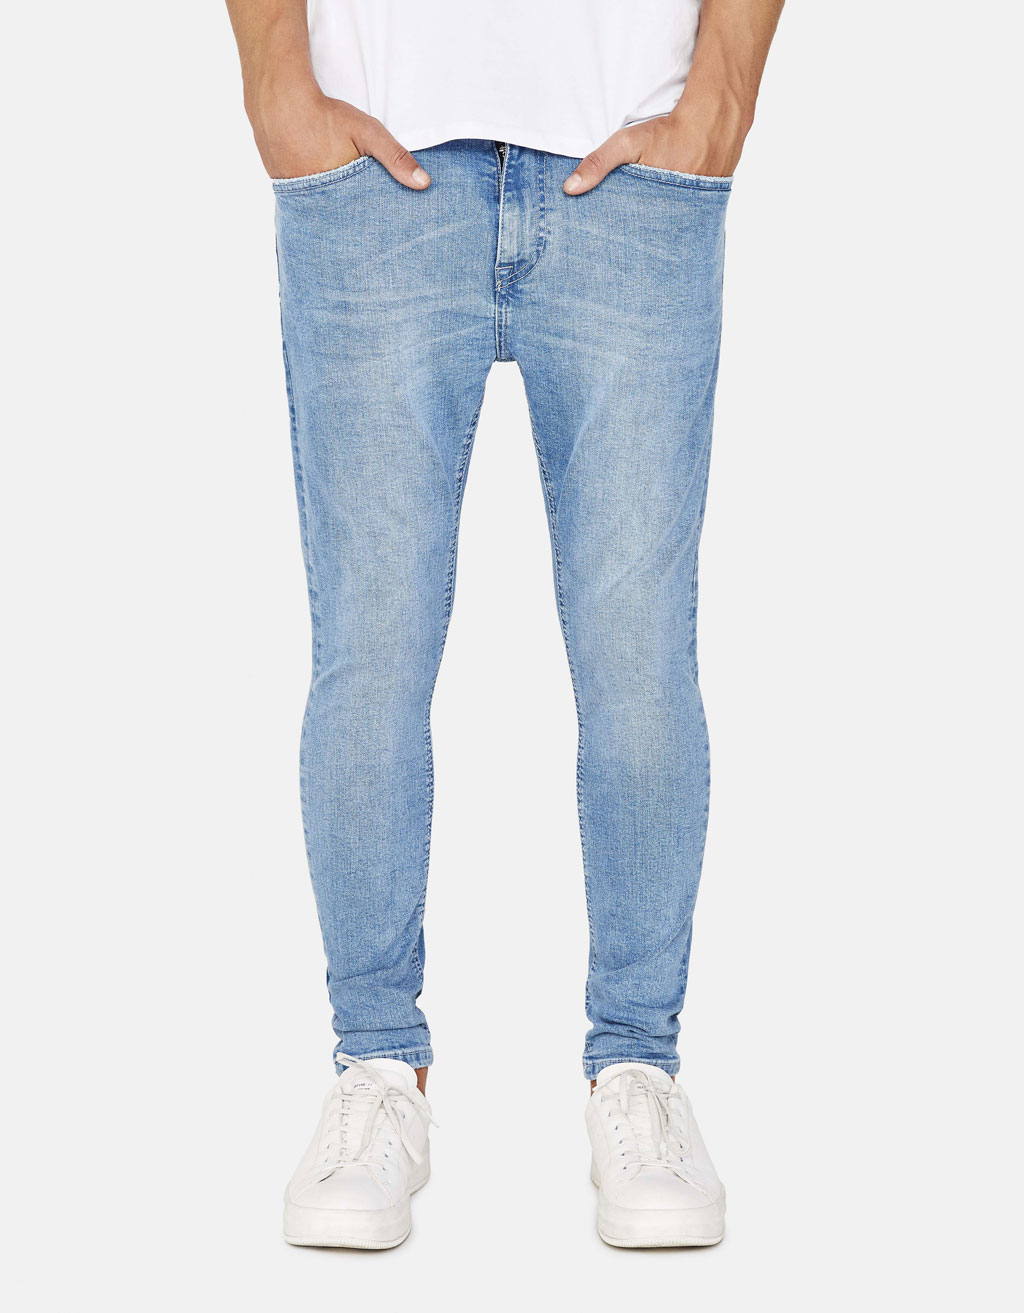 Faded-effect skinny jeans